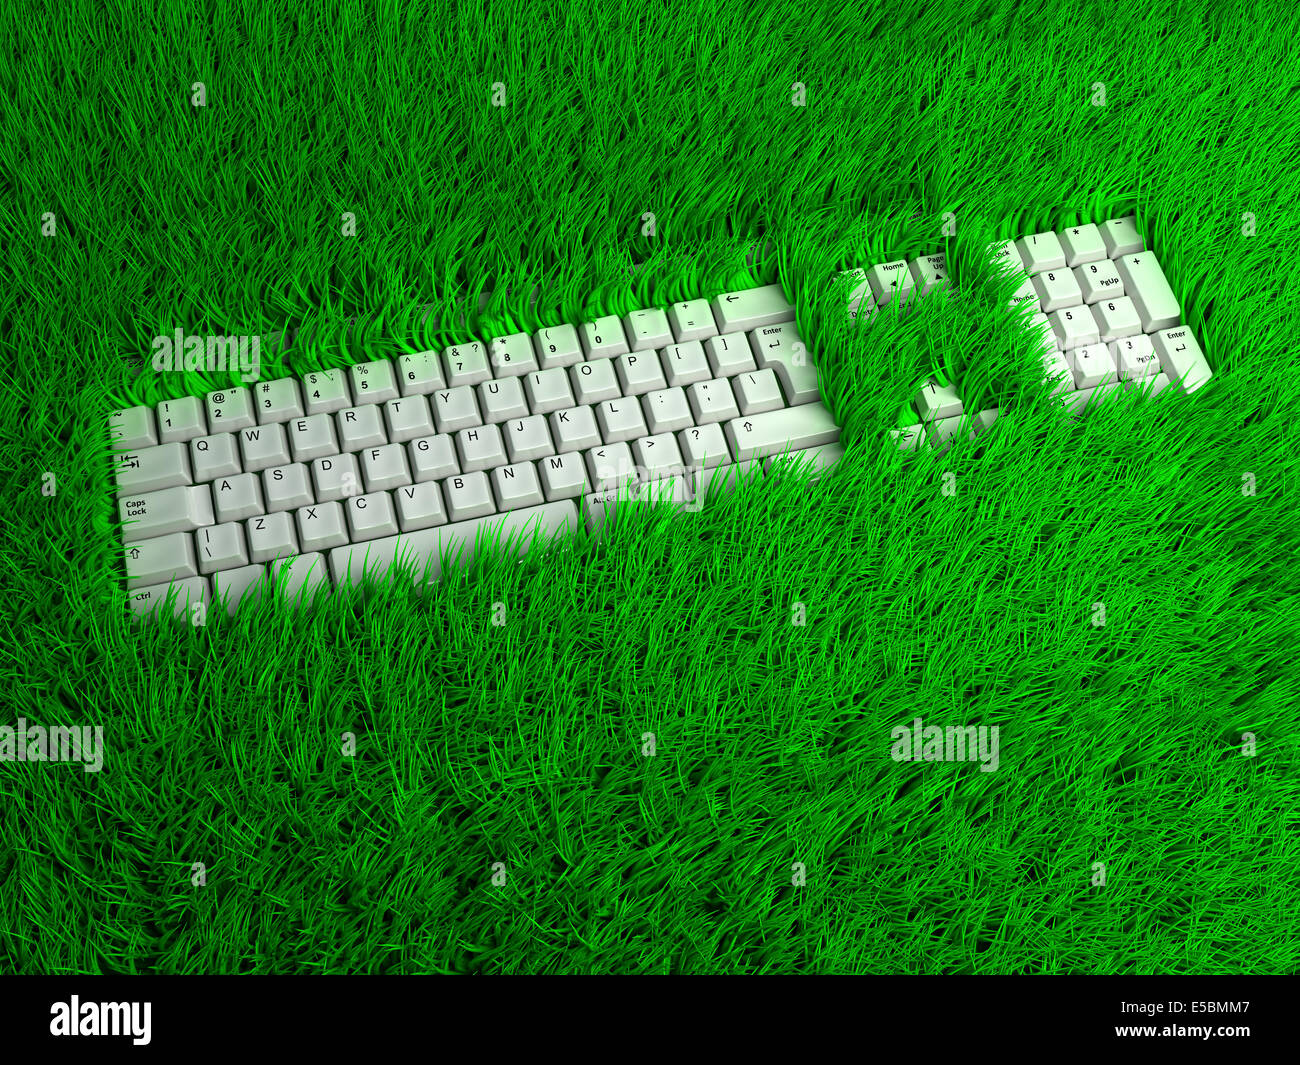 super ergonomic keyboard for freelance. conceptual 3d illustration - Stock Image